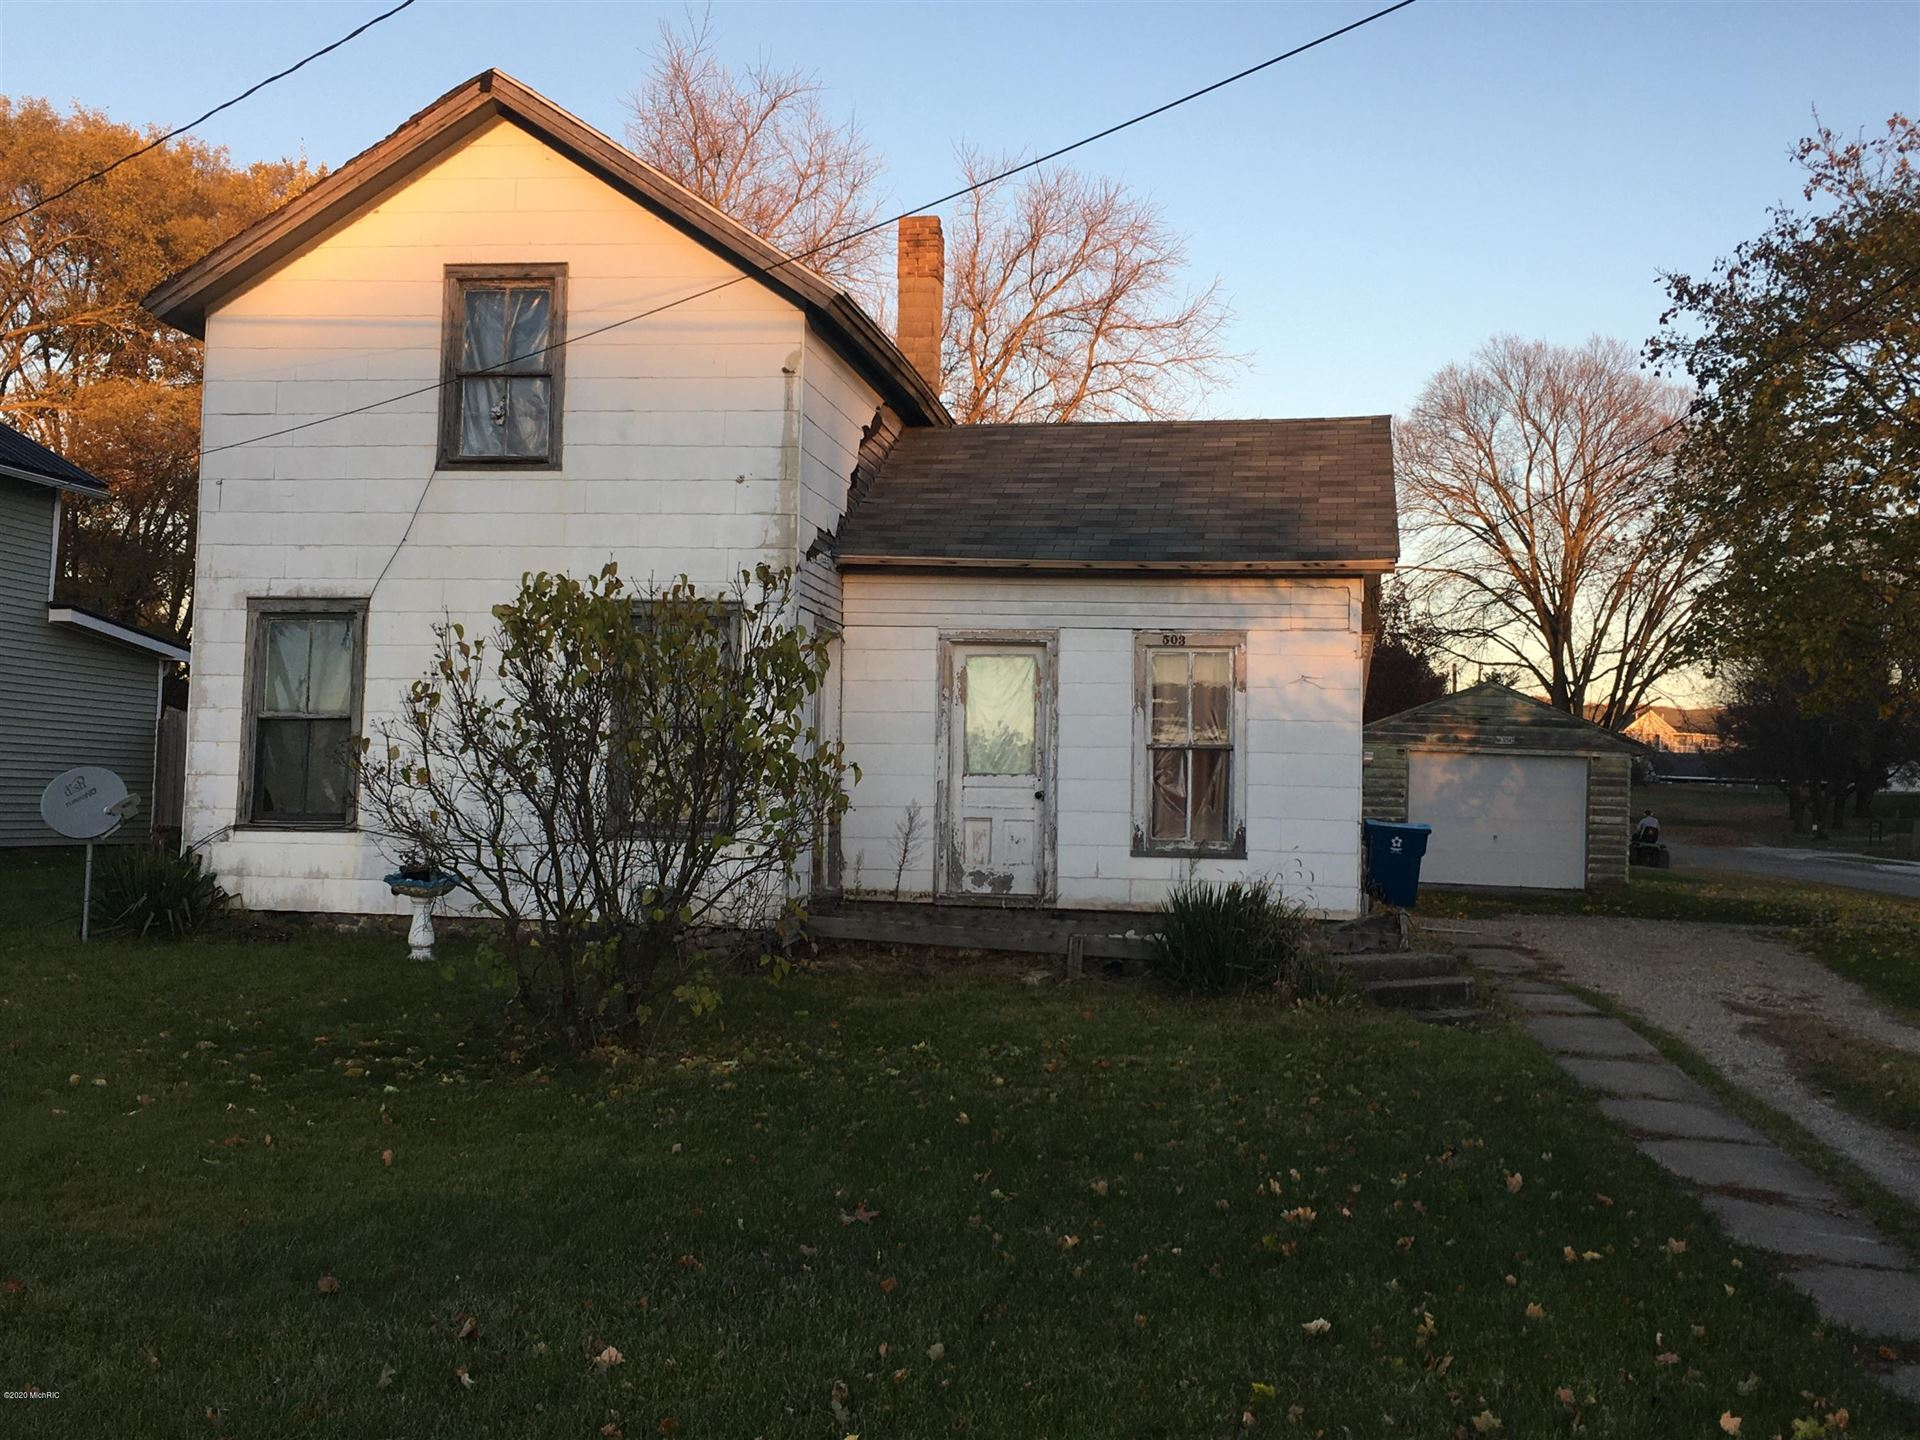 503 grand rapids Street, Middleville, MI 49333 - MLS#: 20046250